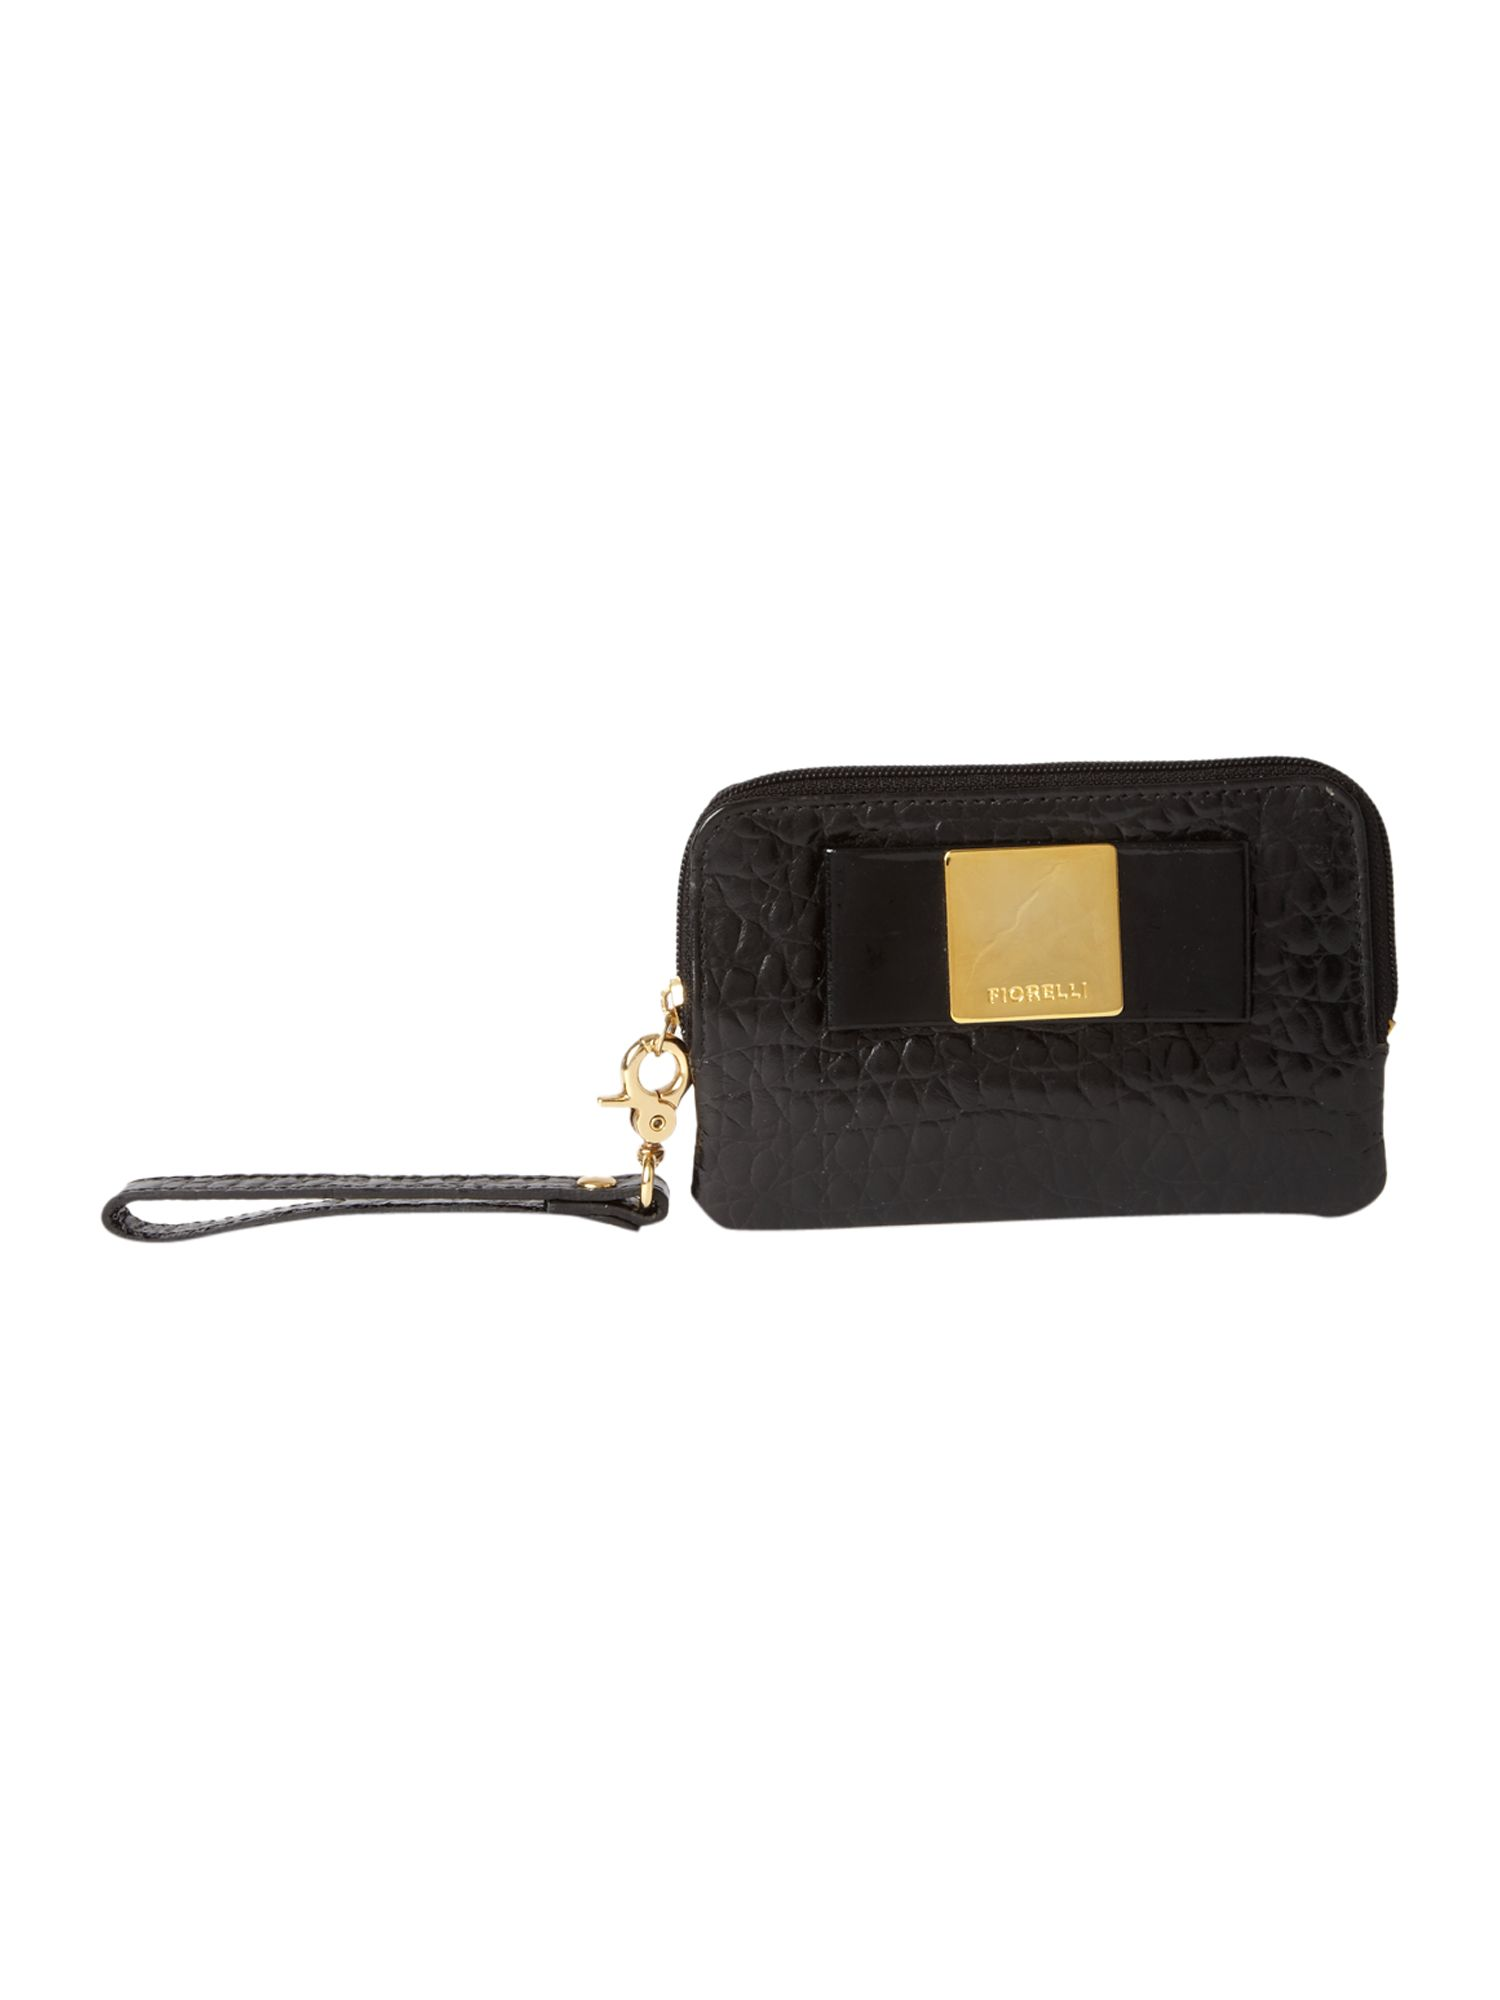 Fiorelli Bow Coin Purse, Black